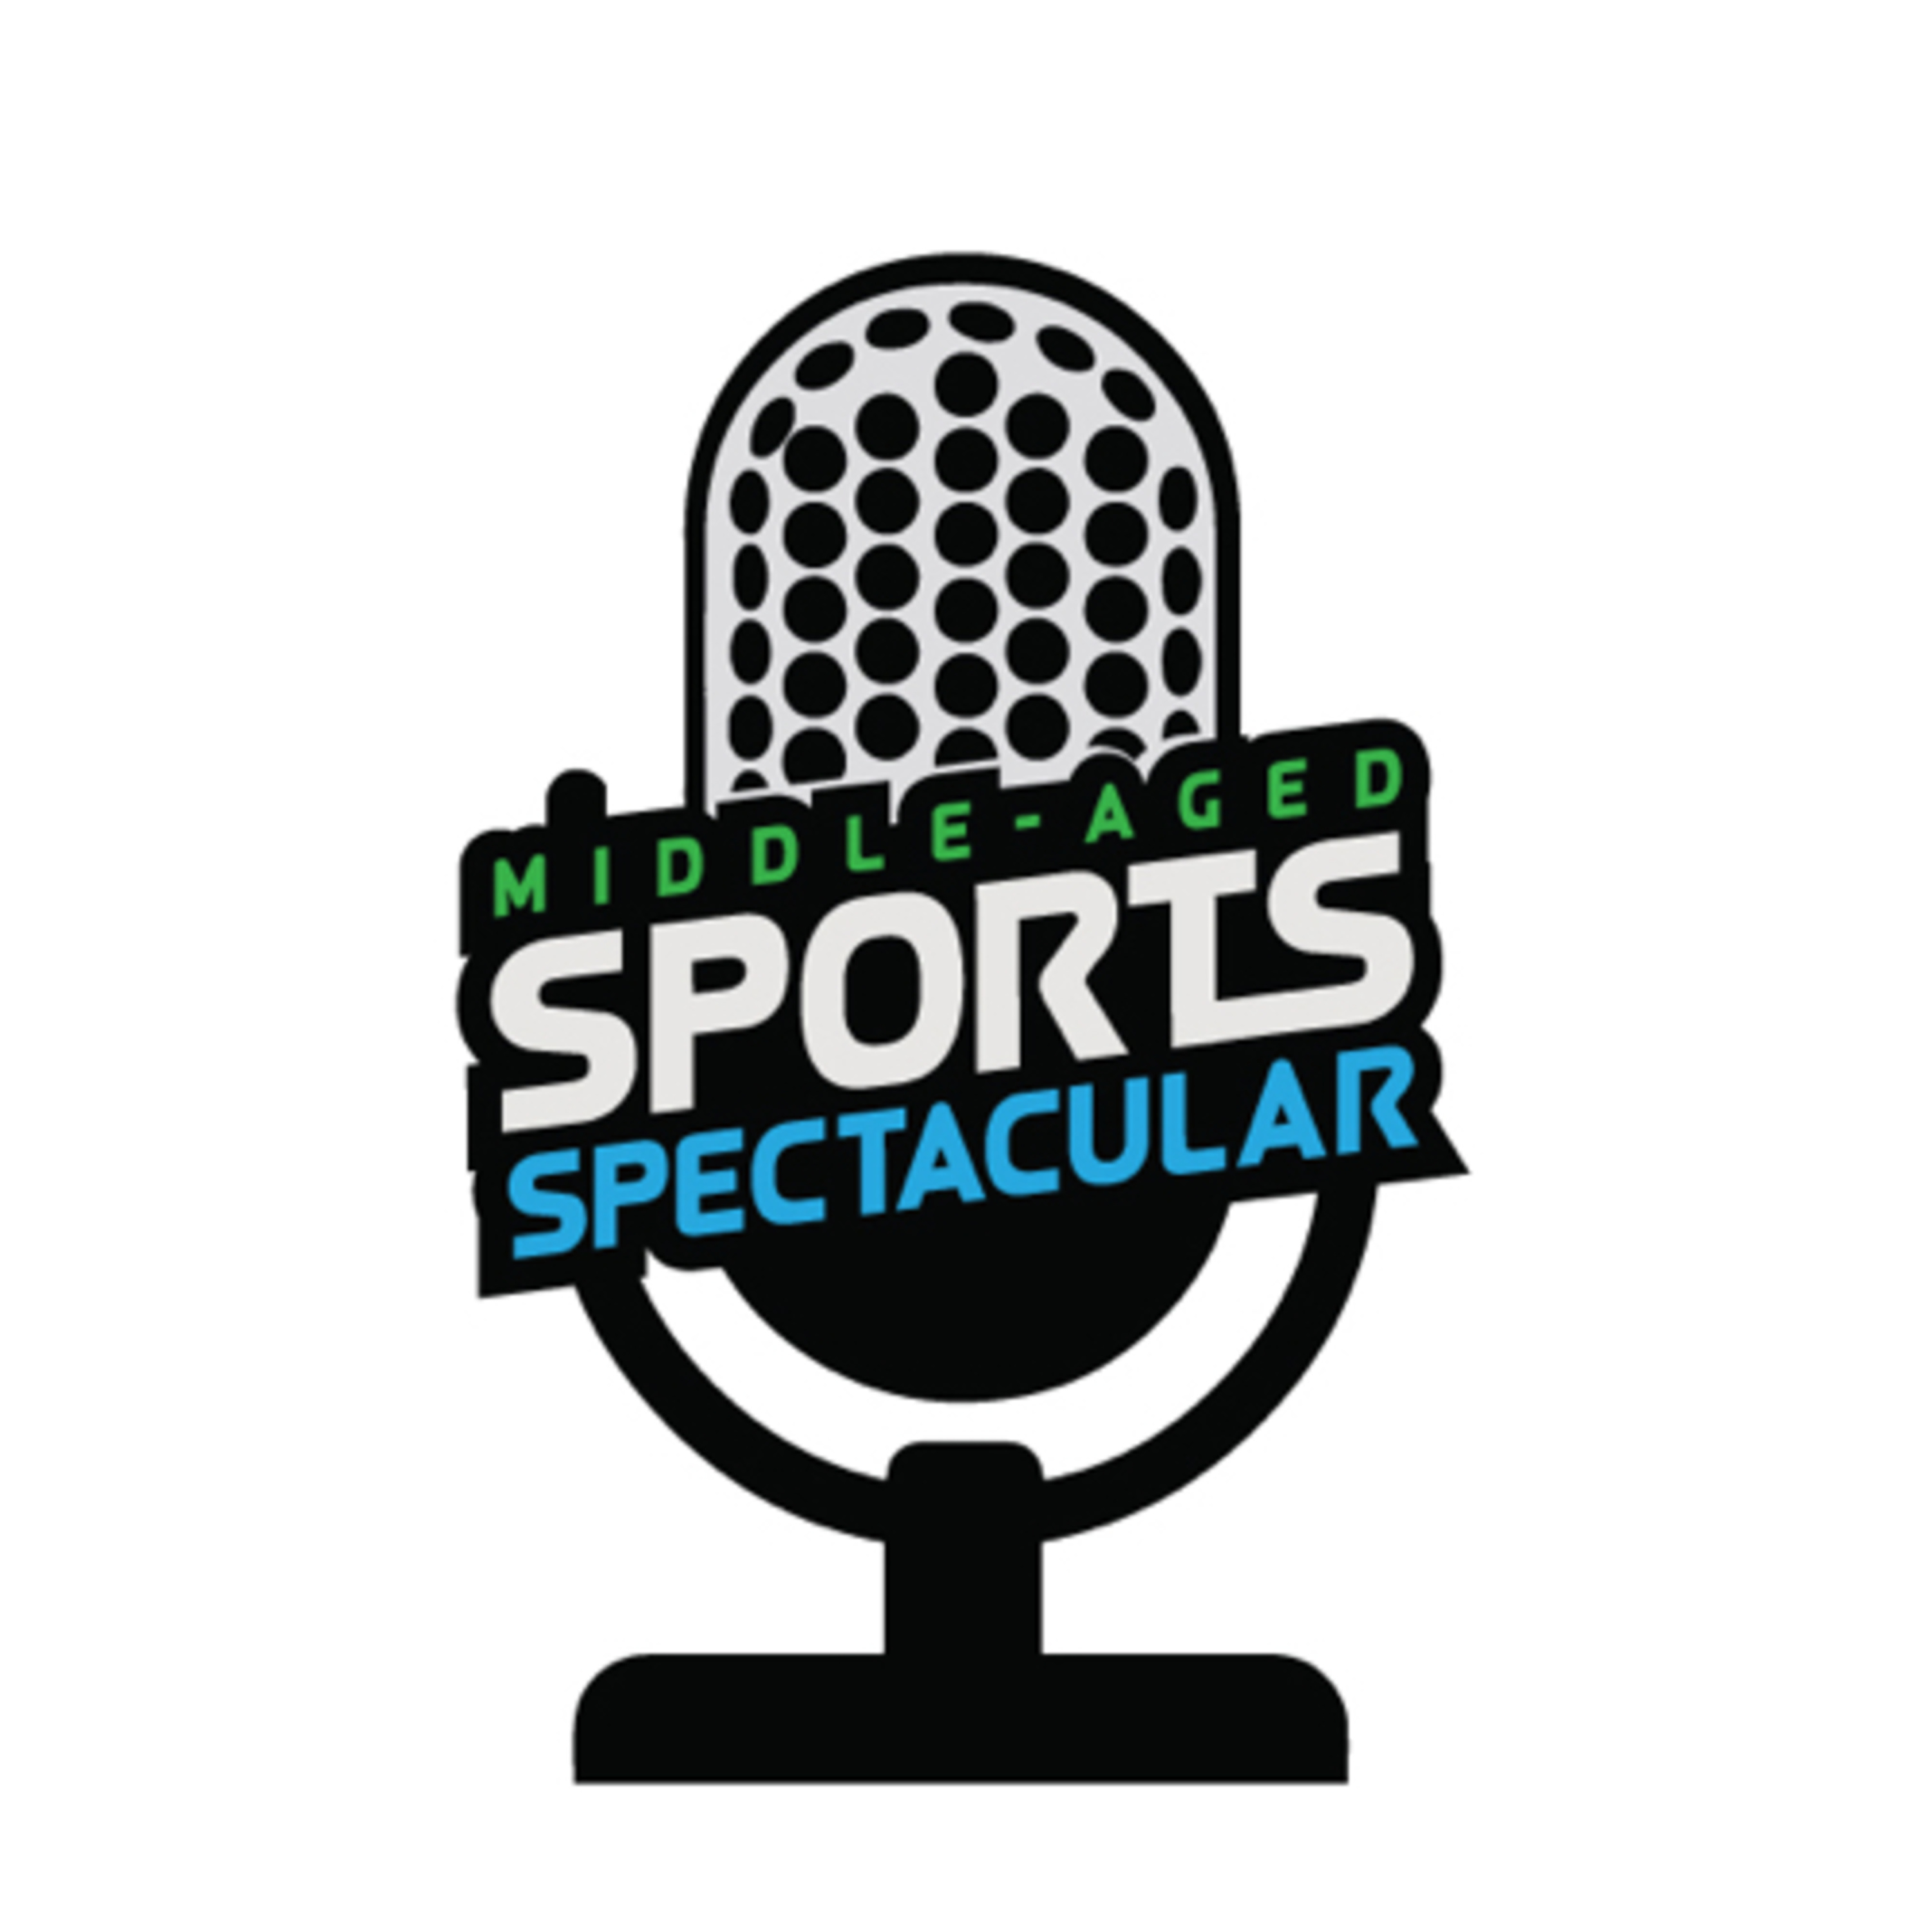 Middle Aged Sports Spectacular